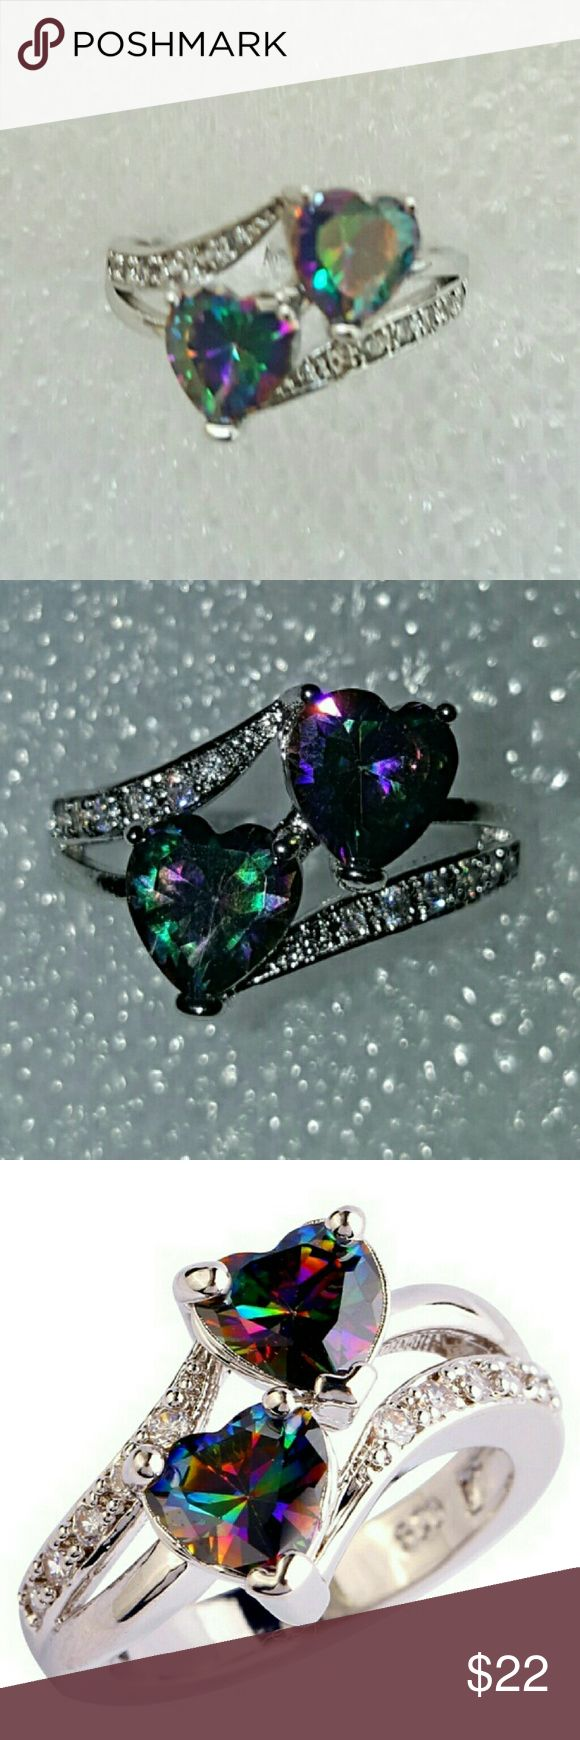 Mystic Topaz Heart Stones set in .925 Silver Mystic Topaz Heart Stones set in .925 Silver.  Side CZ stones line the Hearts to add additional sparkle to this fabulous ring.  Great gift for Valentines Day or Mothers Day. Life by Design  Jewelry Rings